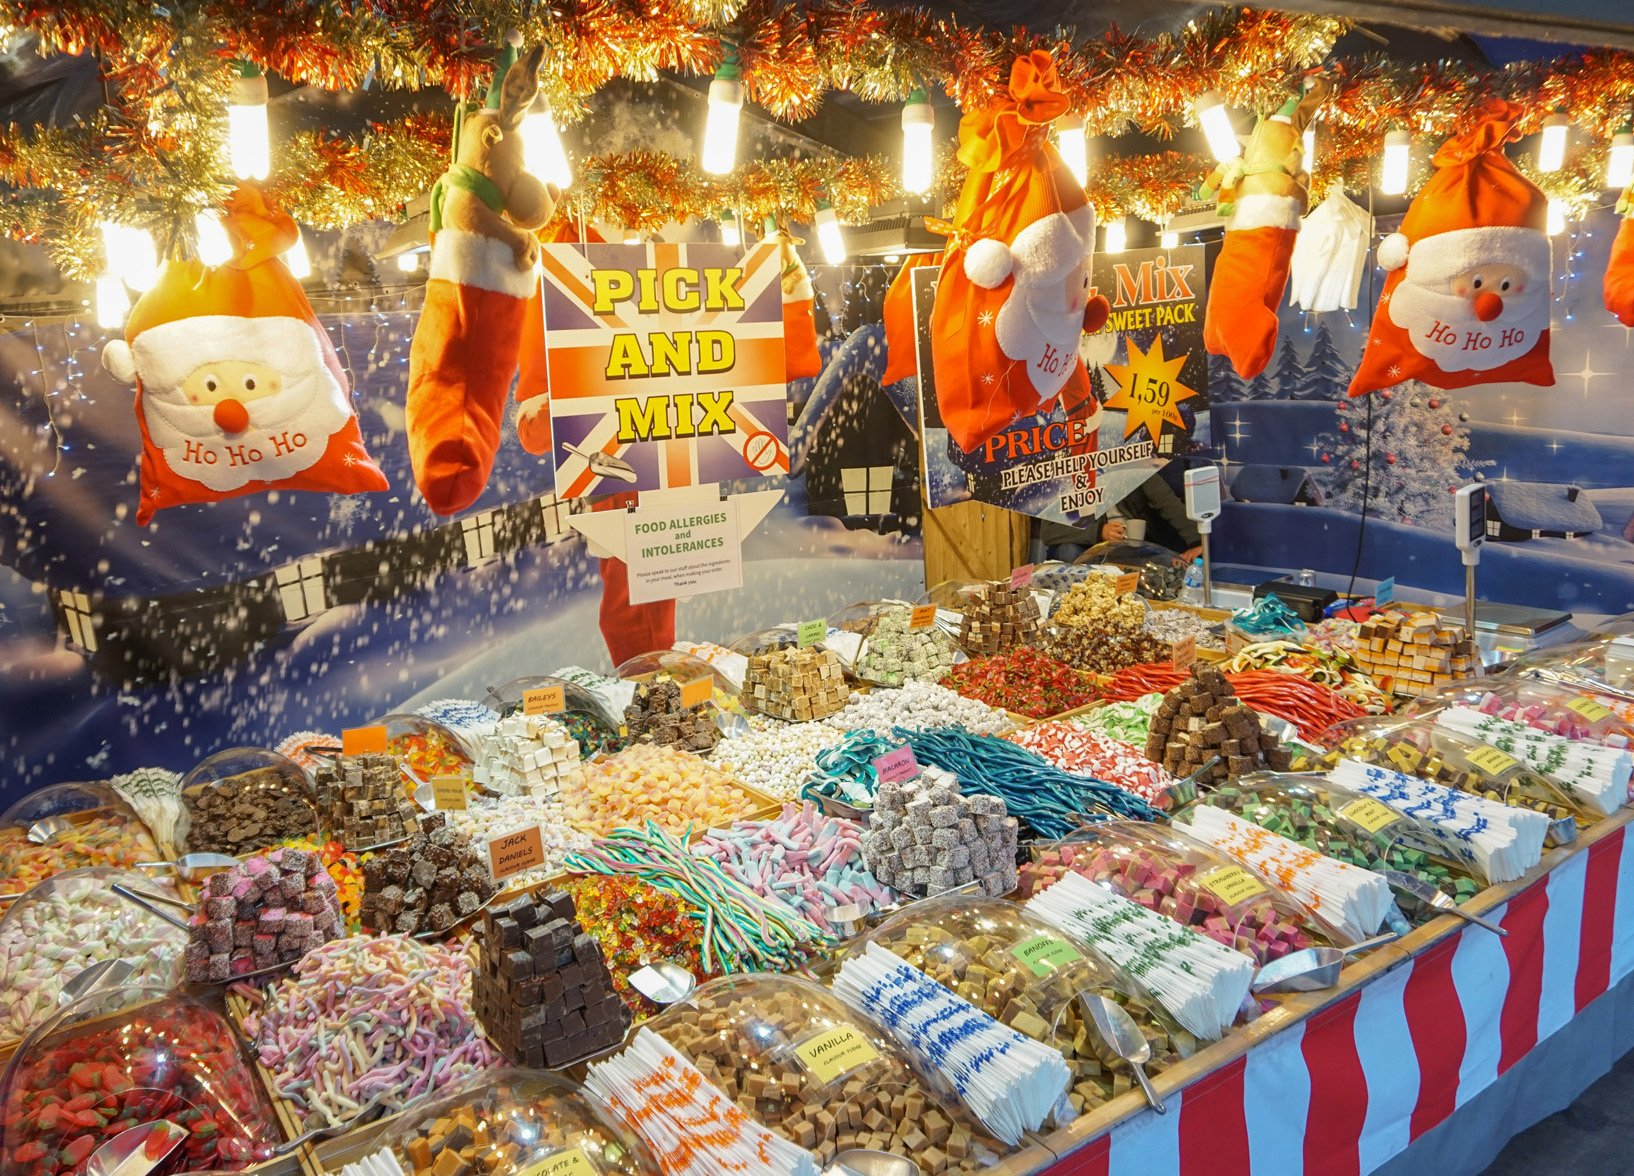 Sweets Stalls Selling Candy at the Belfast Christmas Market